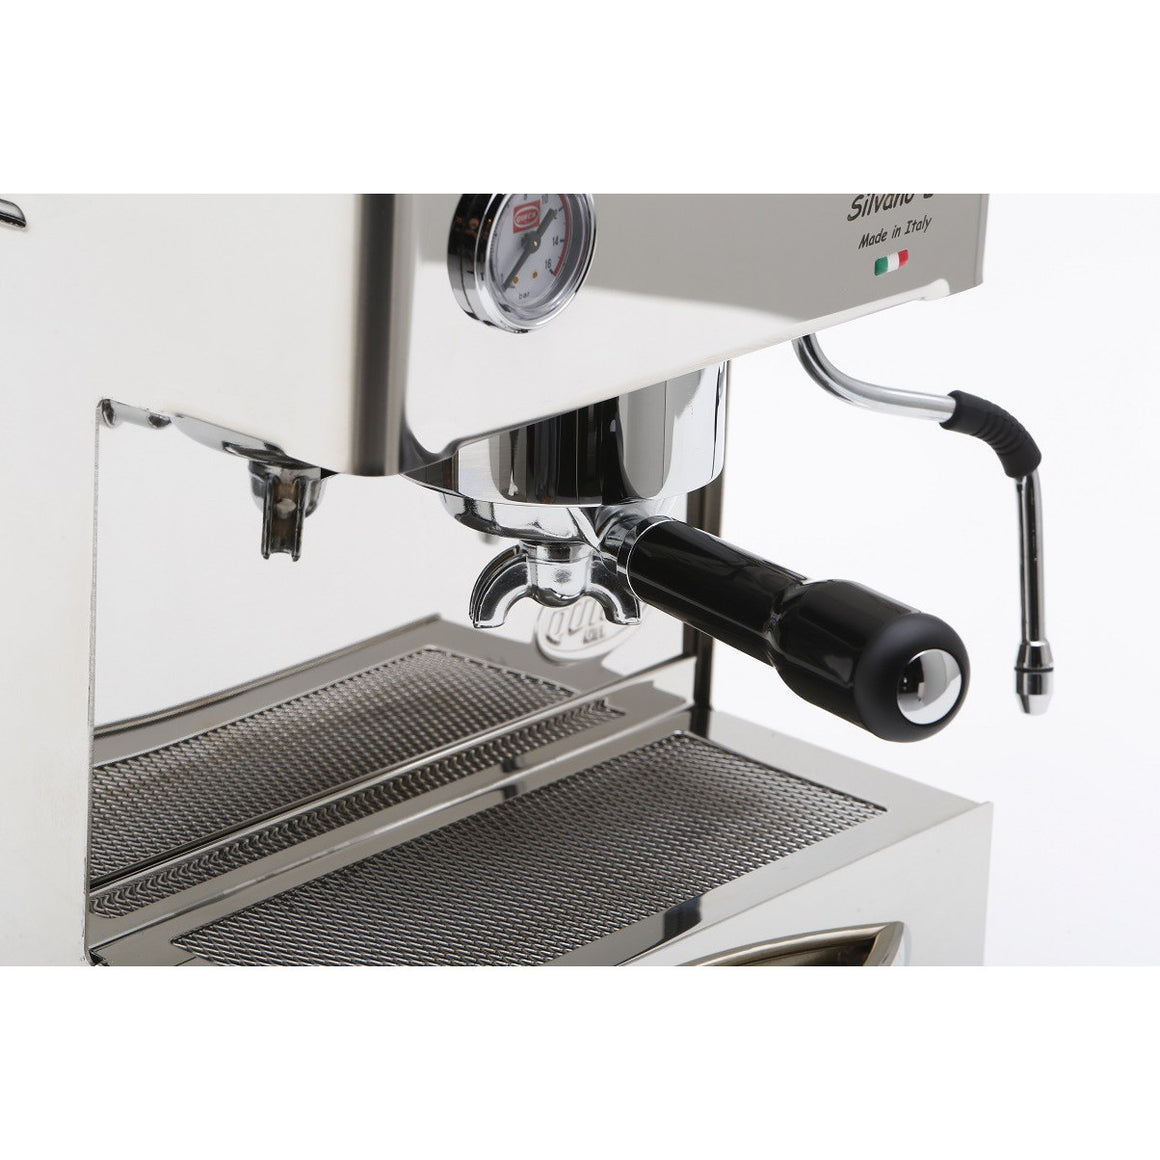 QUICK MILL SILVANO EVO ESPRESSO MACHINE - My Espresso Shop - 11